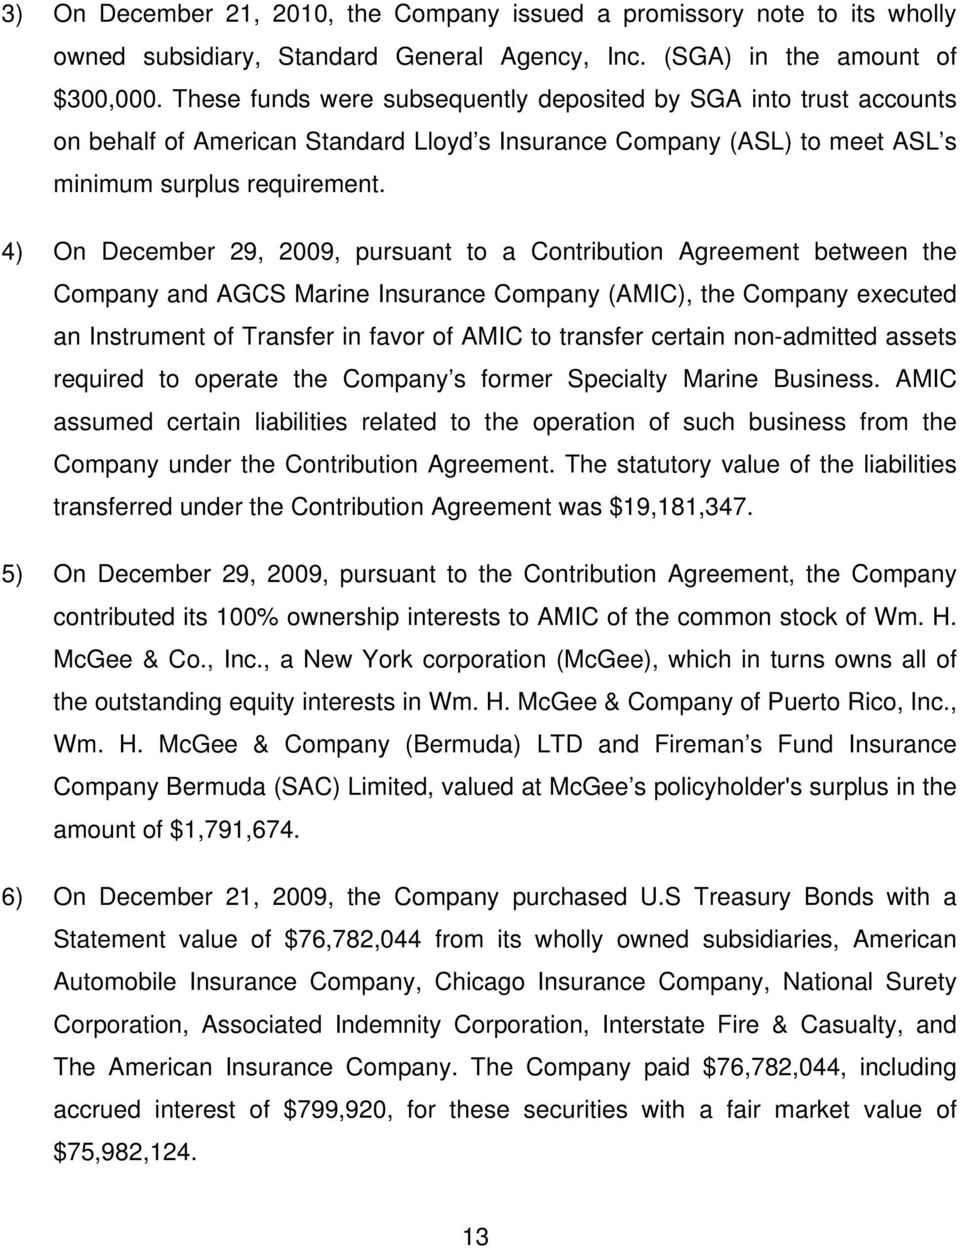 4) On December 29, 2009, pursuant to a Contribution Agreement between the Company and AGCS Marine Insurance Company (AMIC), the Company executed an Instrument of Transfer in favor of AMIC to transfer